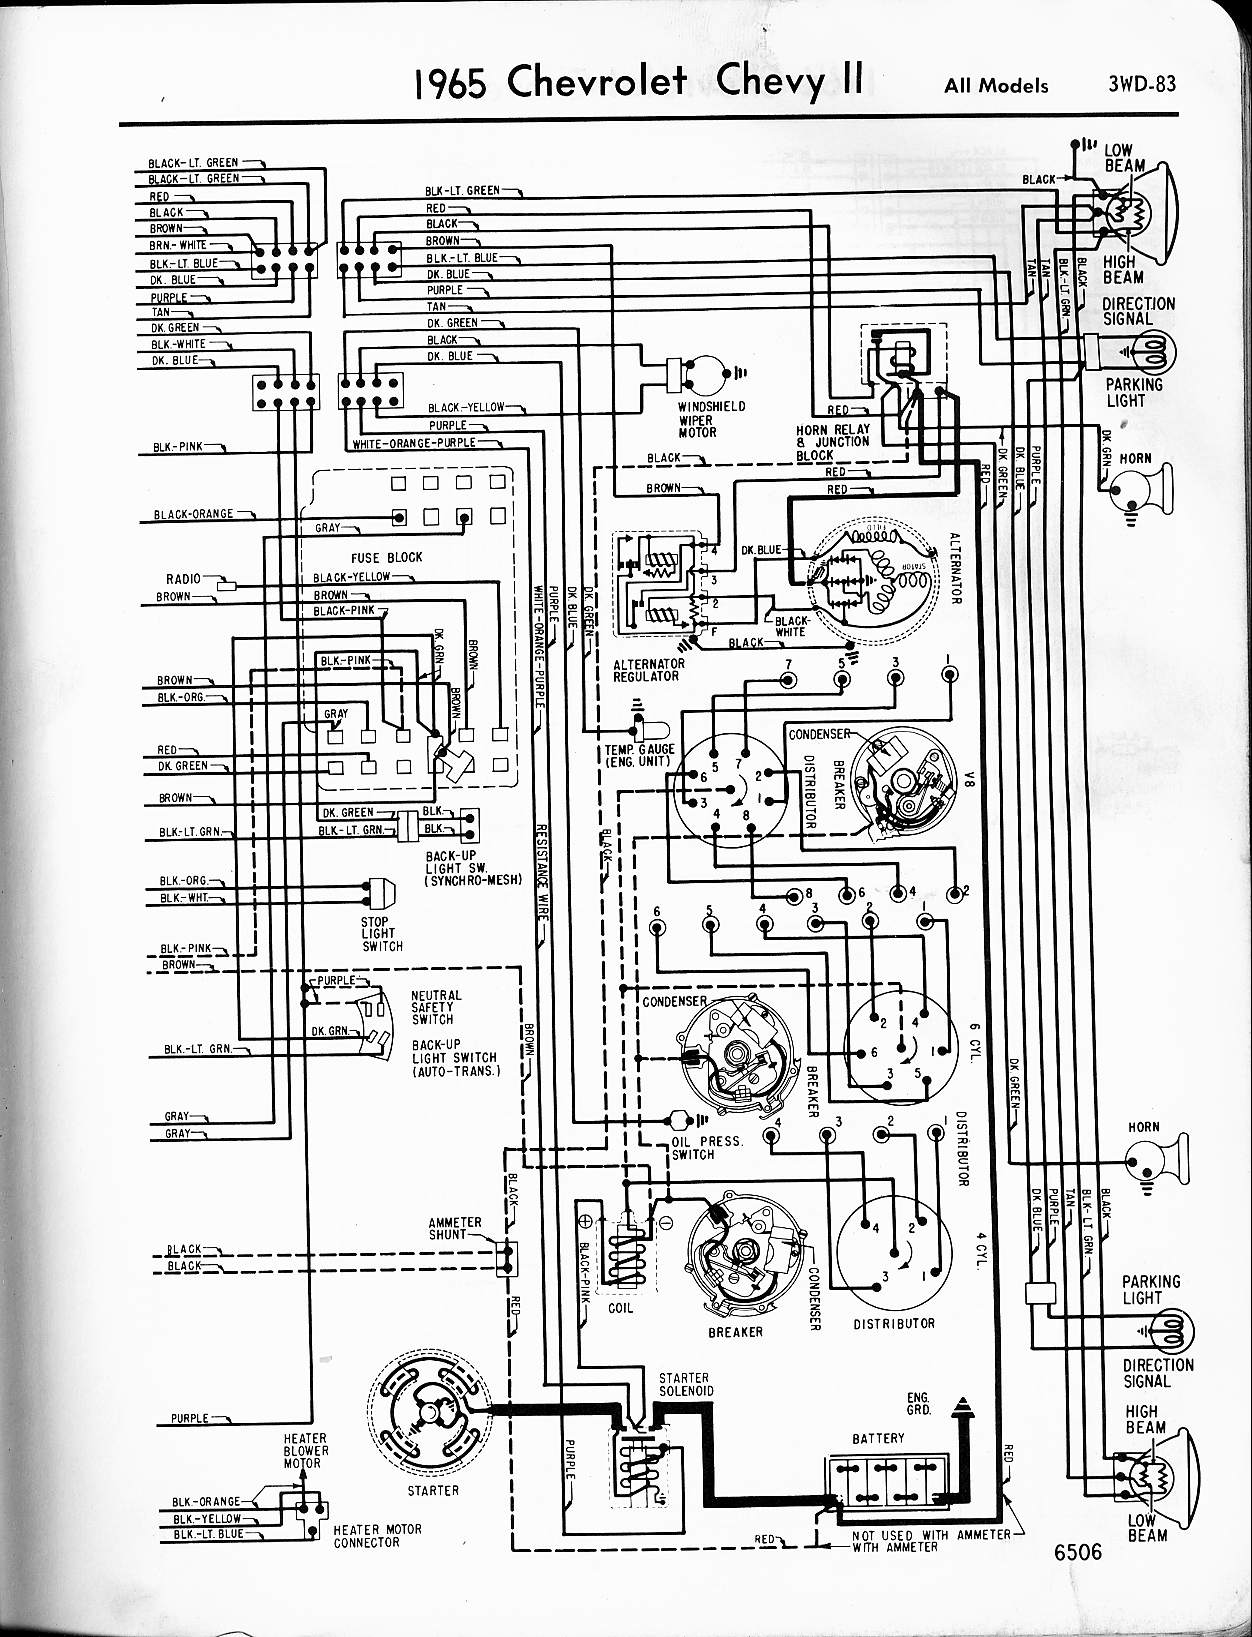 72 Chevy Nova Wiring Diagram Reinvent Your 1947 Ford Coupe 1971 Diagrams Detailed Schematics Rh Lelandlutheran Com 1970 1972